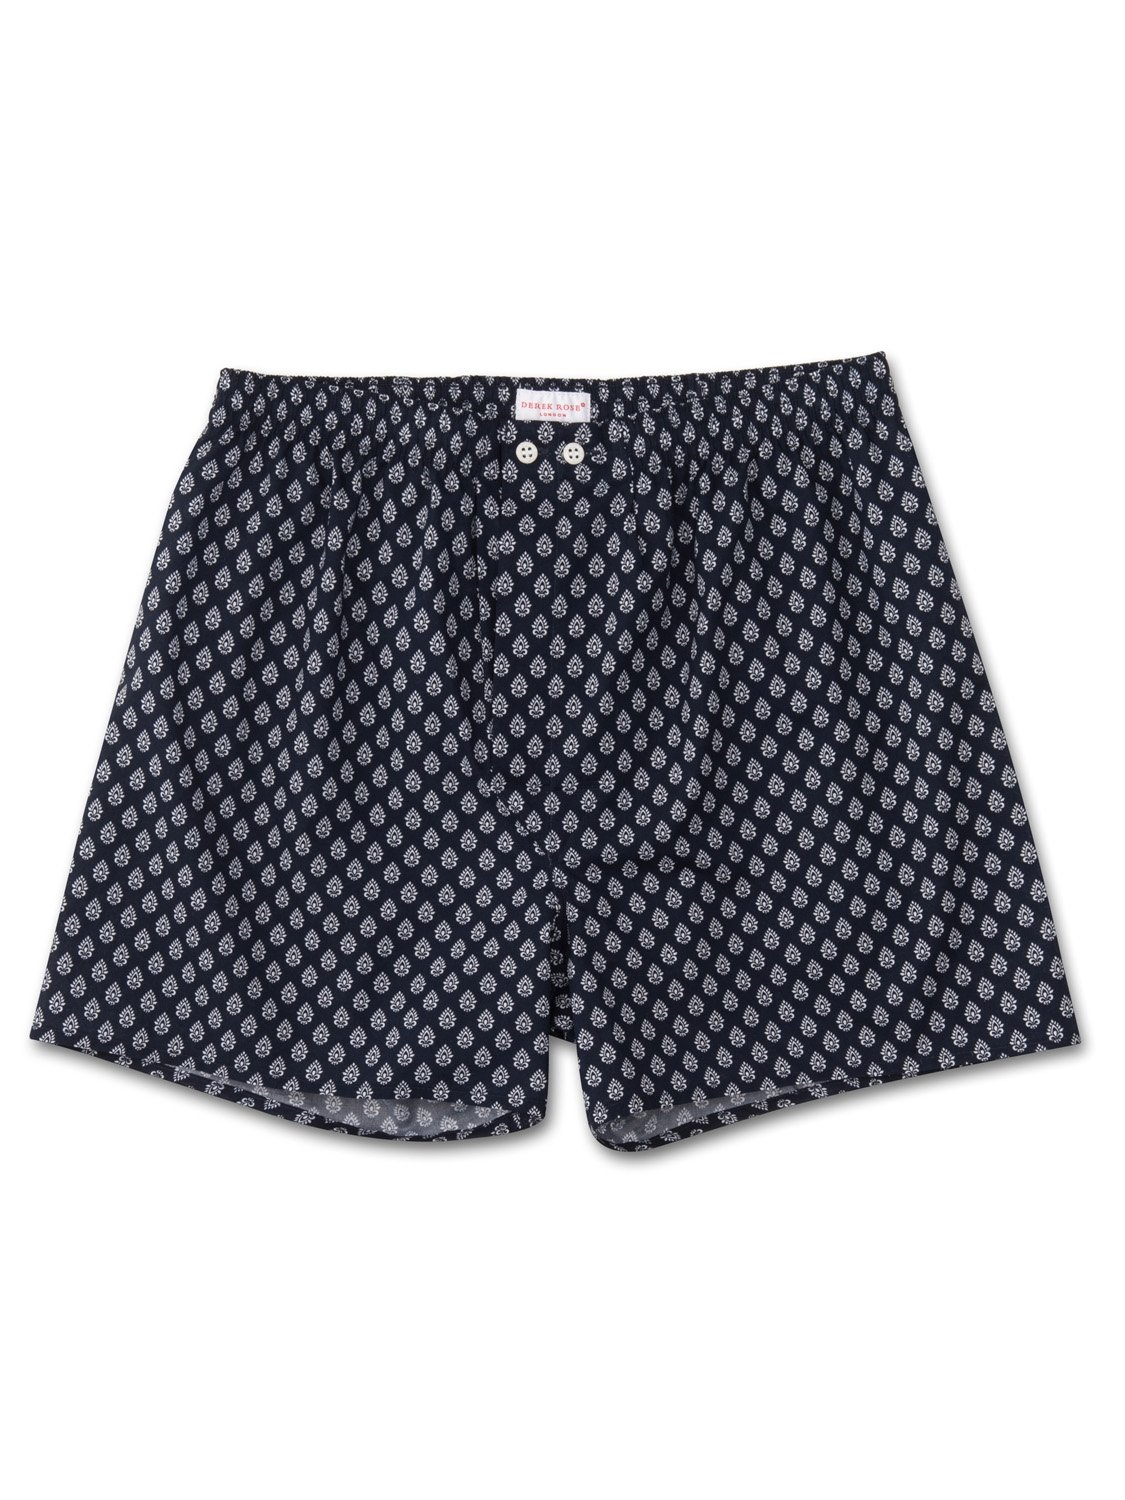 Men's Classic Fit Boxer Shorts Nelson 64 Cotton Batiste Navy